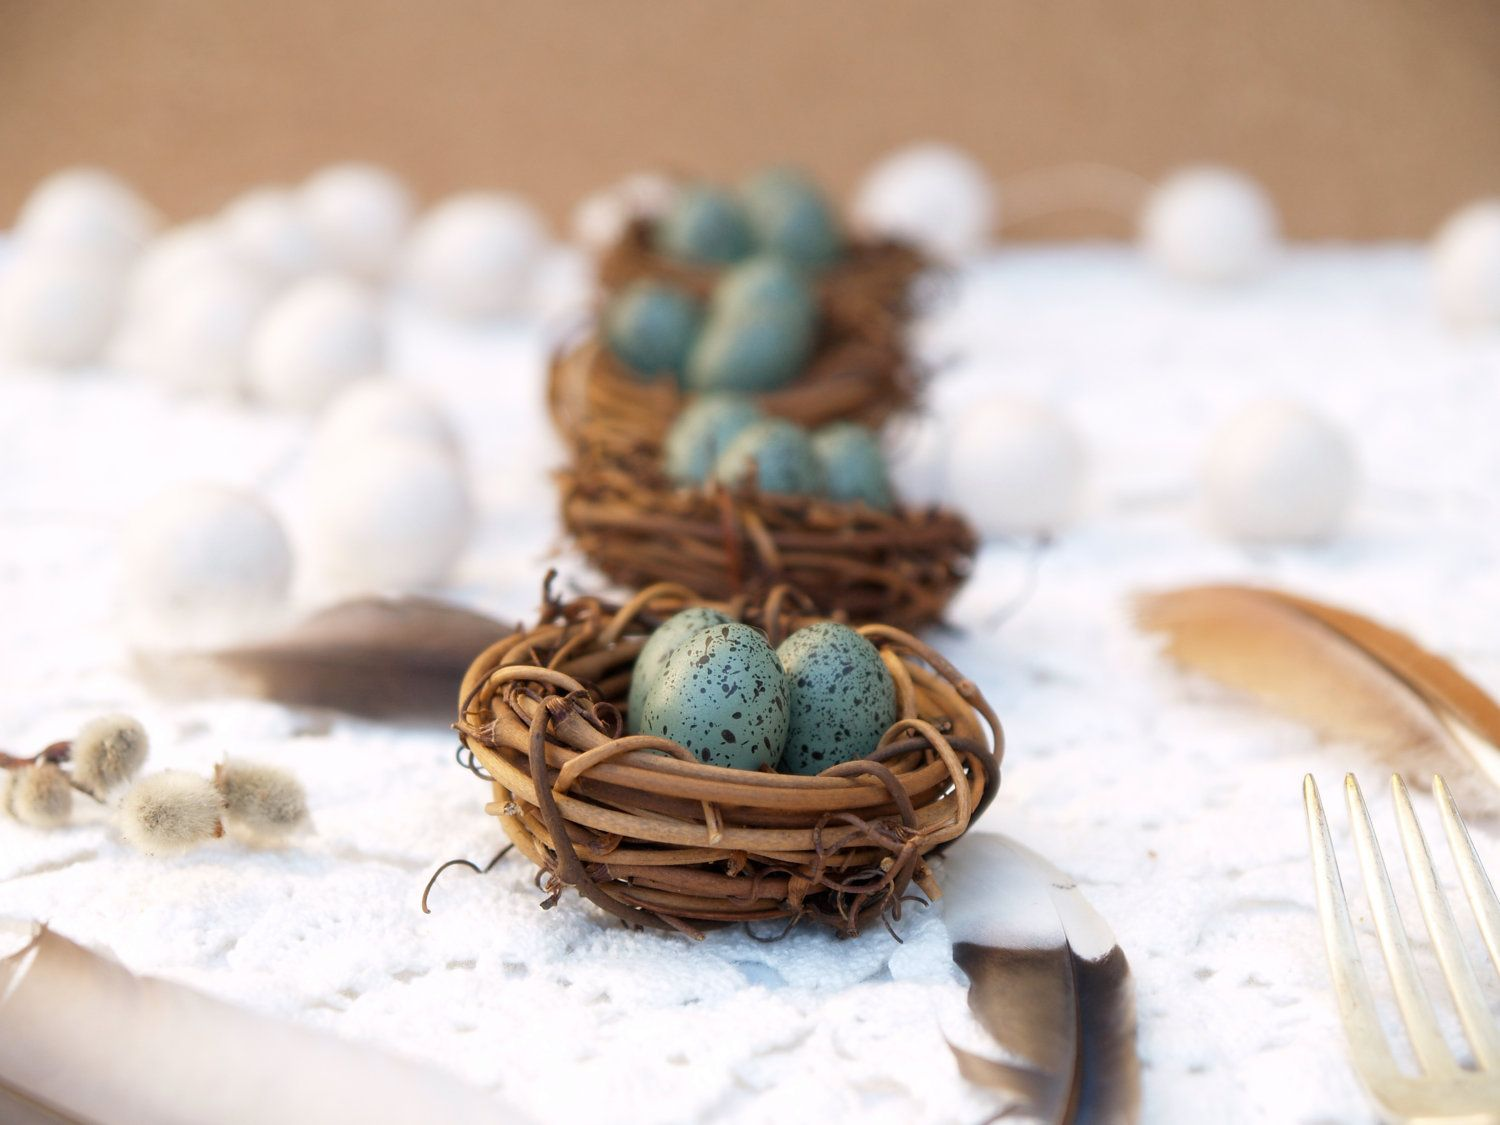 Nest Wedding Table Decorations 5 Spring Woodland Rustic Favor Easter Robin  Egg Turquoise Blue Pastel Shabby